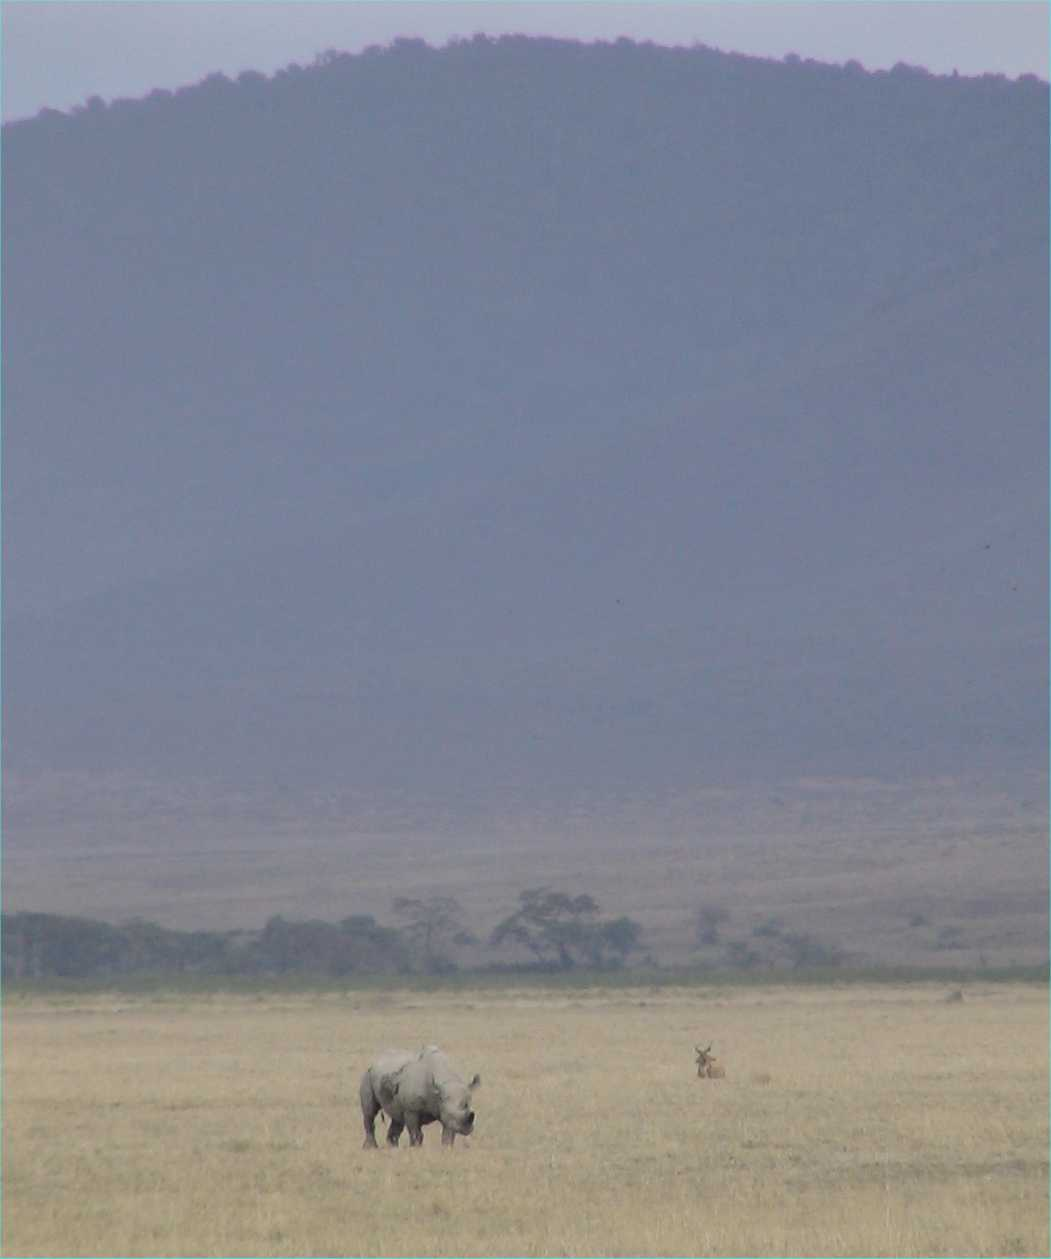 Black rhino.  Note the rim of the crater in the background.  Photo by FG, Dec. 2005.